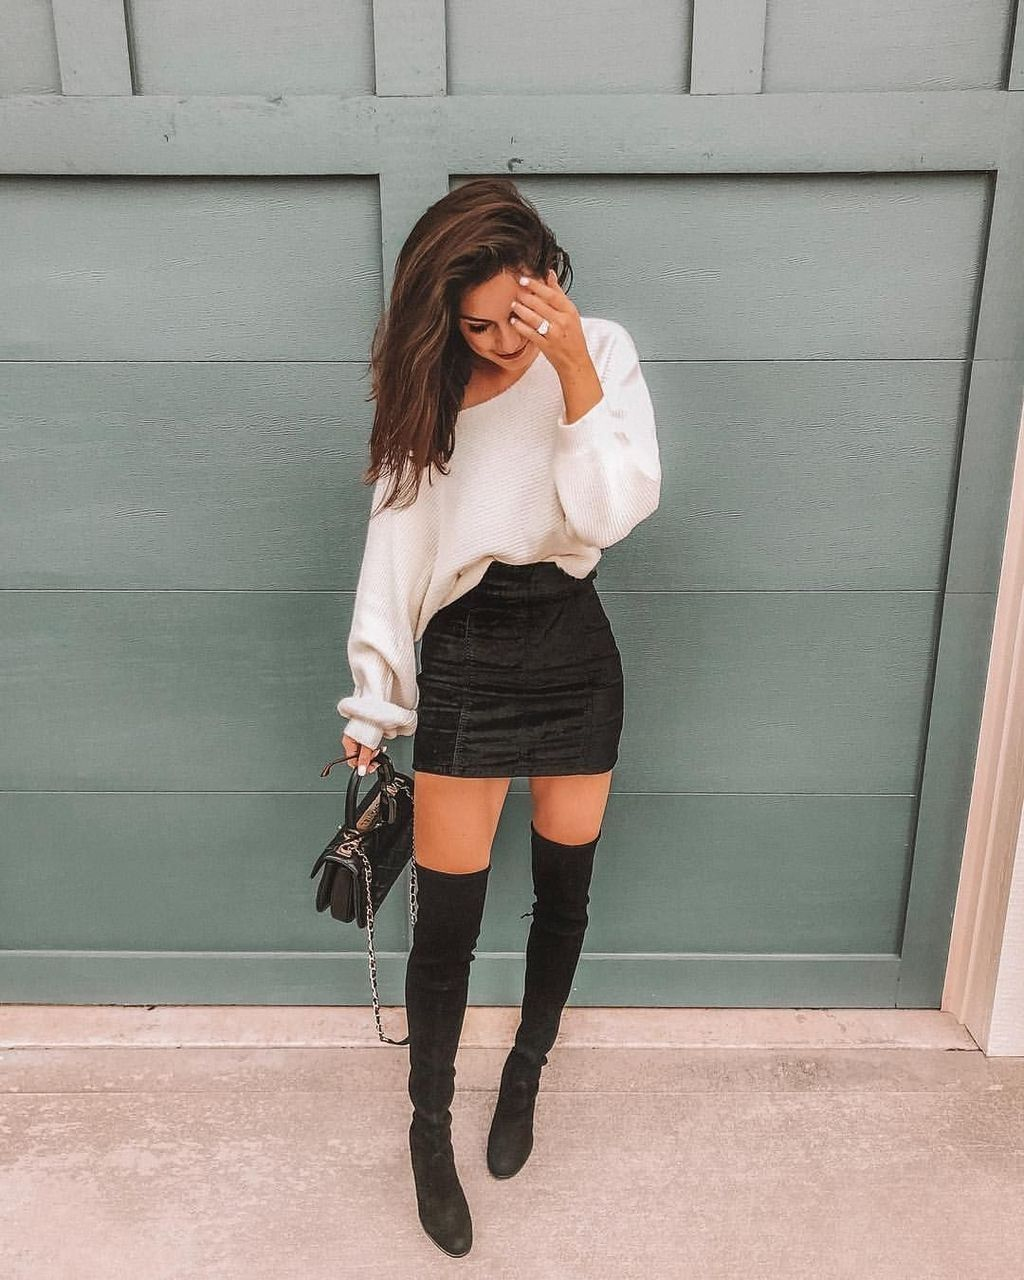 20 Fancy Winter Outfits Ideas For Going Out Night Birthdayoutfit Winter Outfits Dressy Winter Date Night Outfits Winter Night Outfit